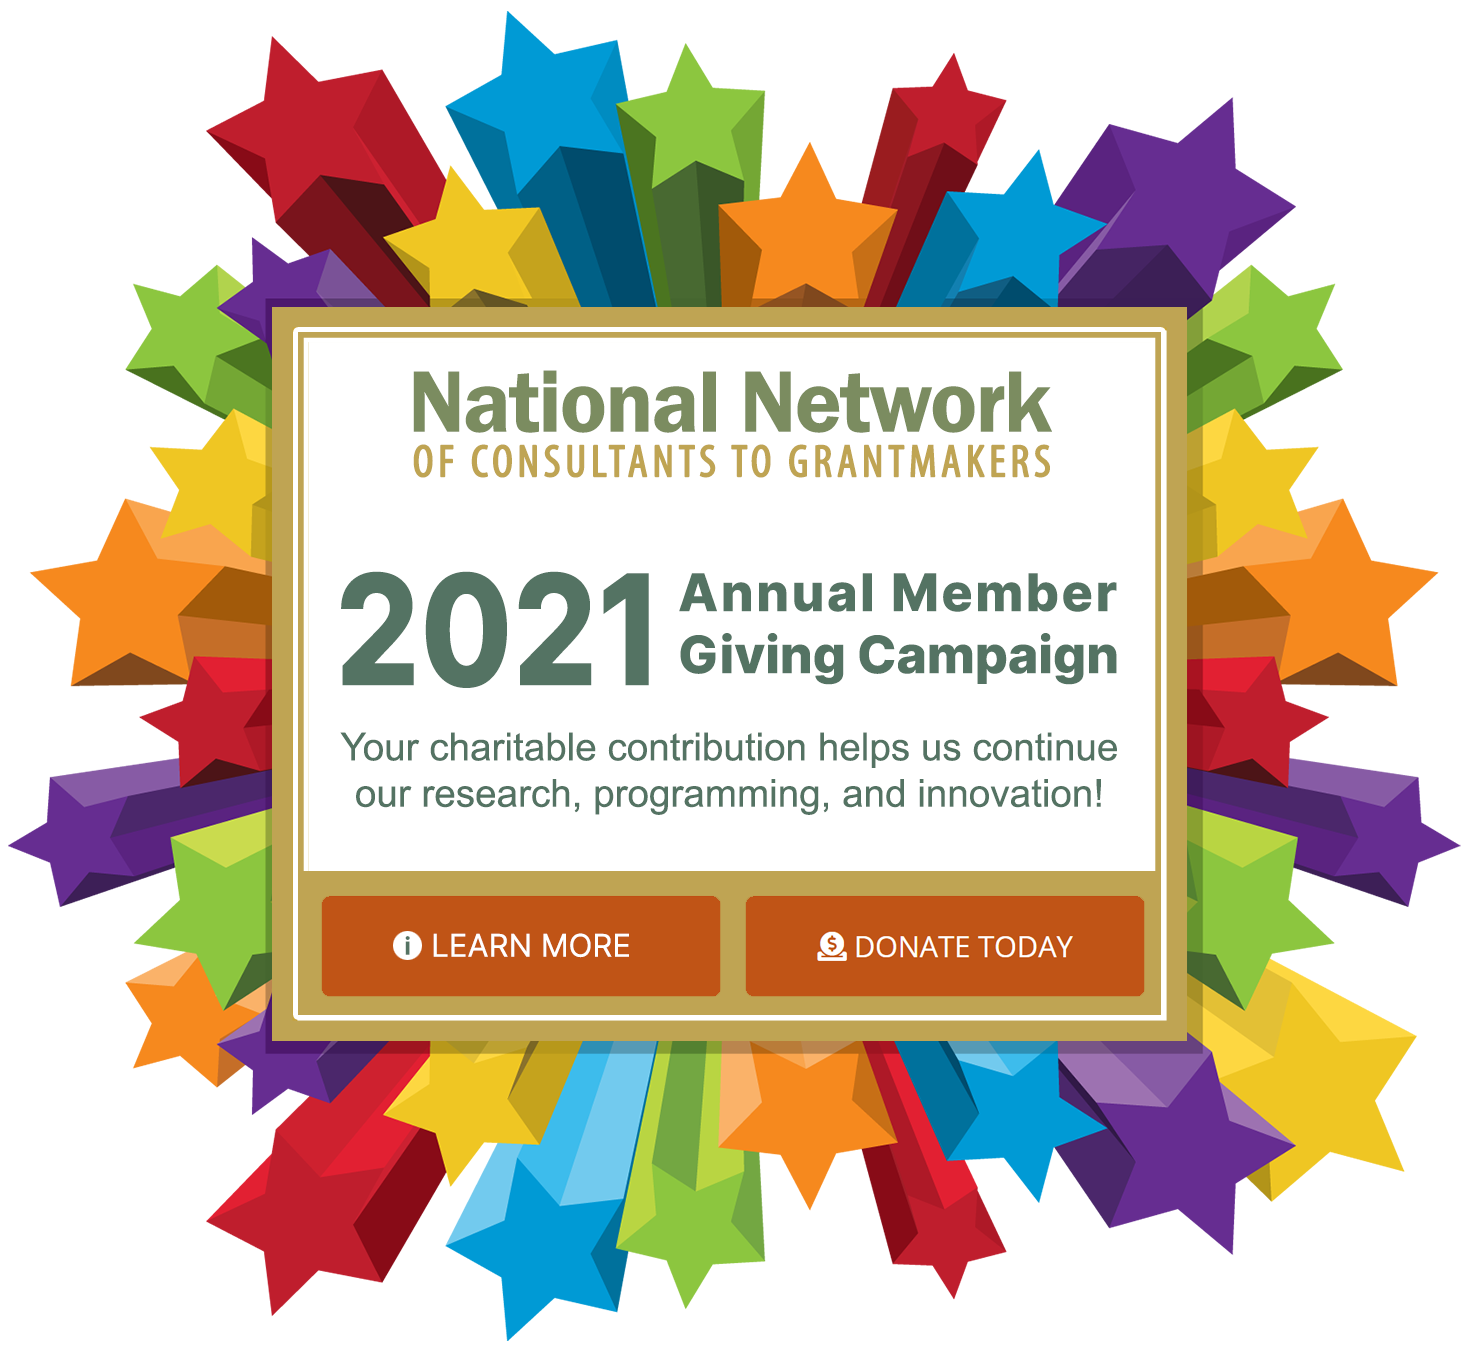 Annual Member Giving Campaign